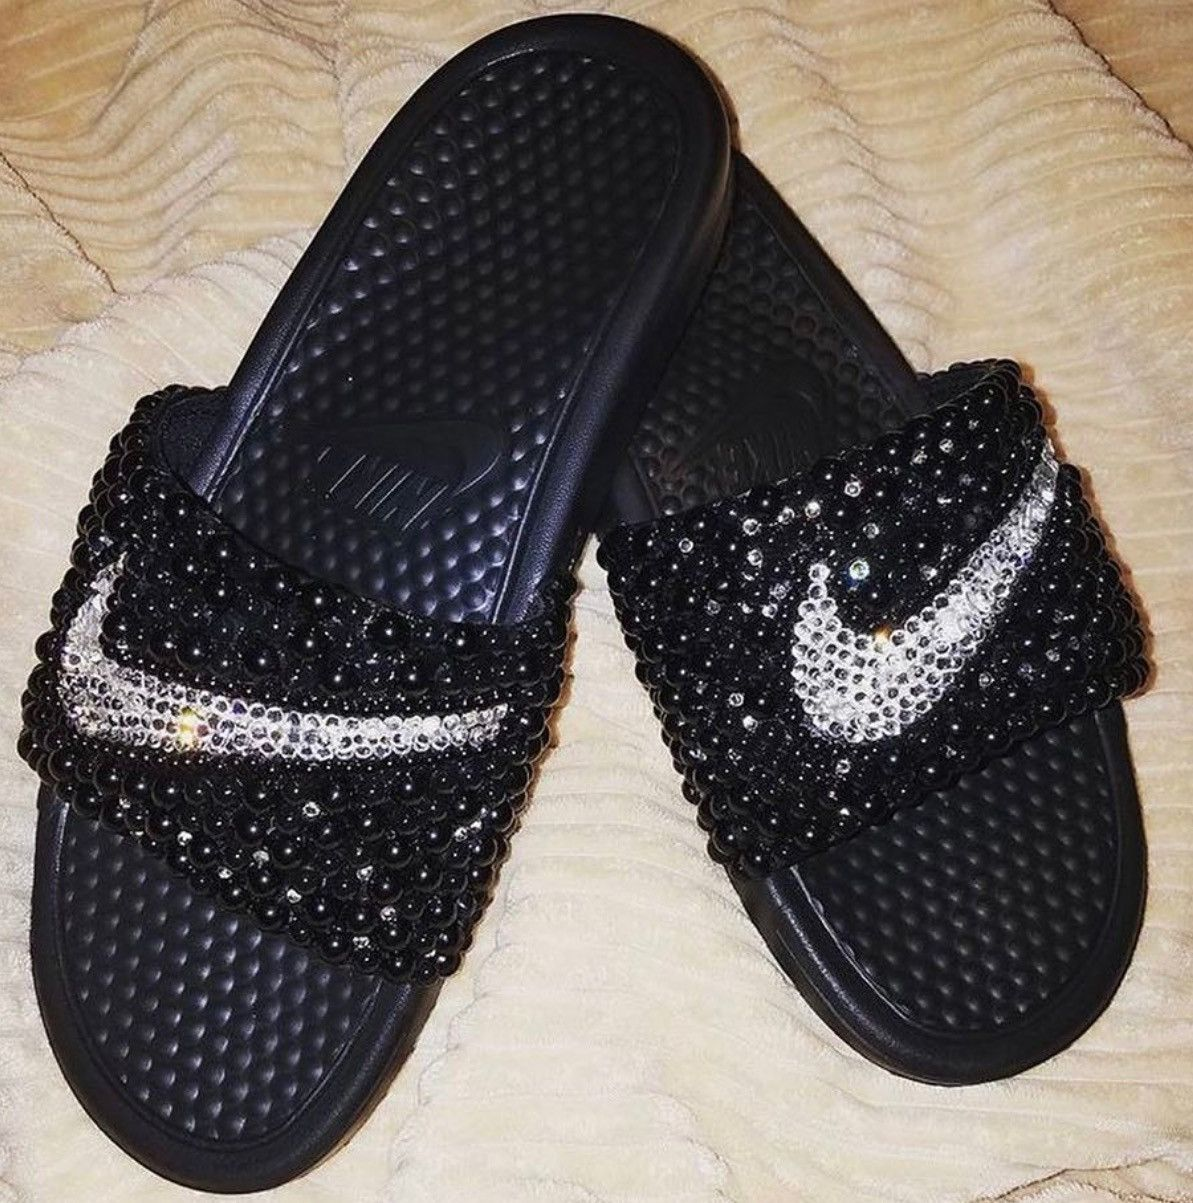 Custom Nike bling Swarovski and pearl slides Nike bling slides Swarovski  Pearl rhinestone sandals with black pearls and crystal clear Stones.